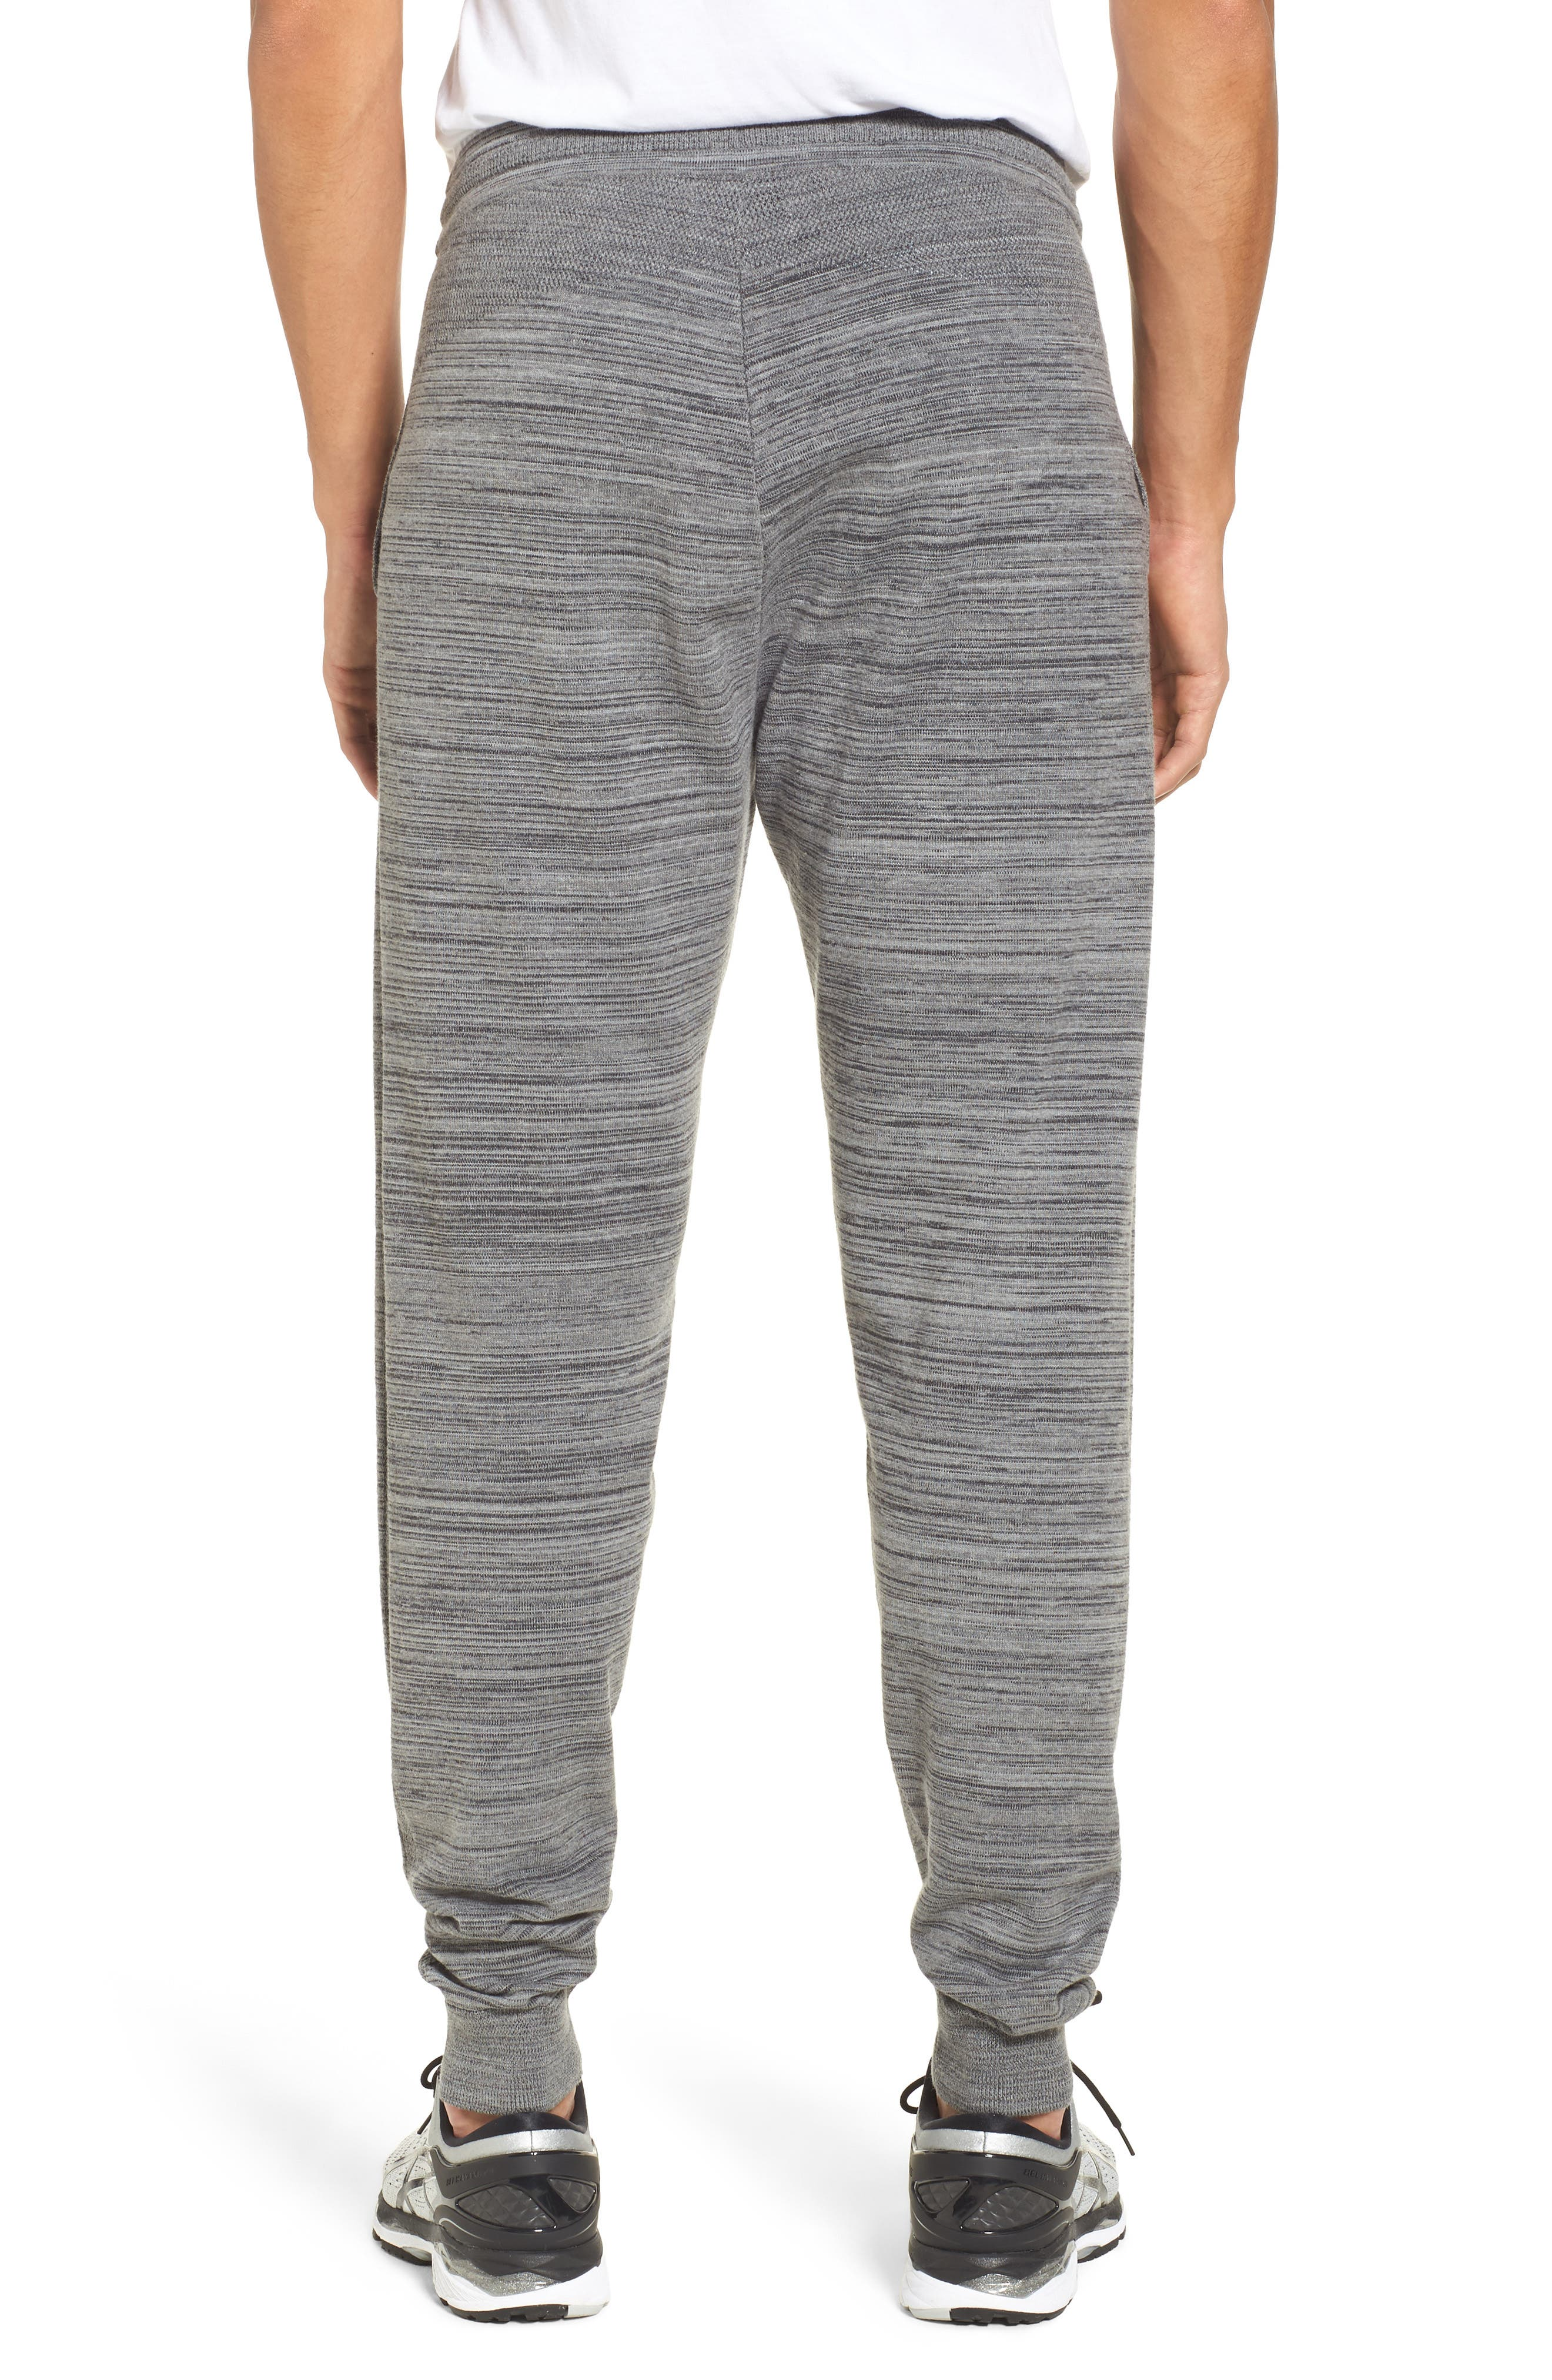 Tech Sweater Knit Jogger Pants,                             Alternate thumbnail 2, color,                             Grey Obsidian Spacedye